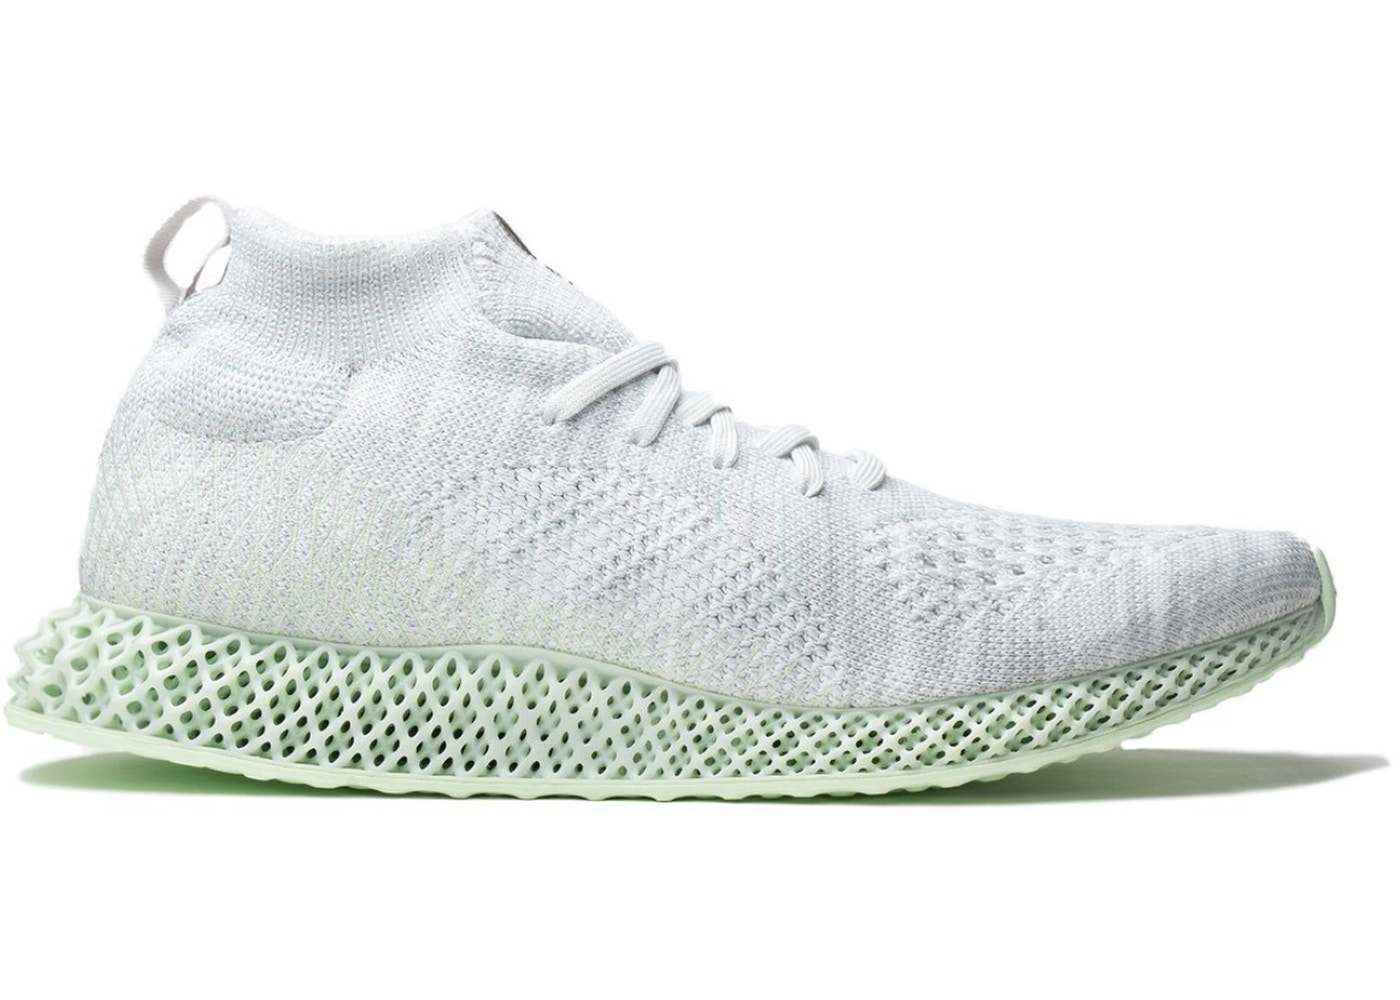 69e8072a35a StockX: Buy and Sell Sneakers, Streetwear, Handbags, Watches